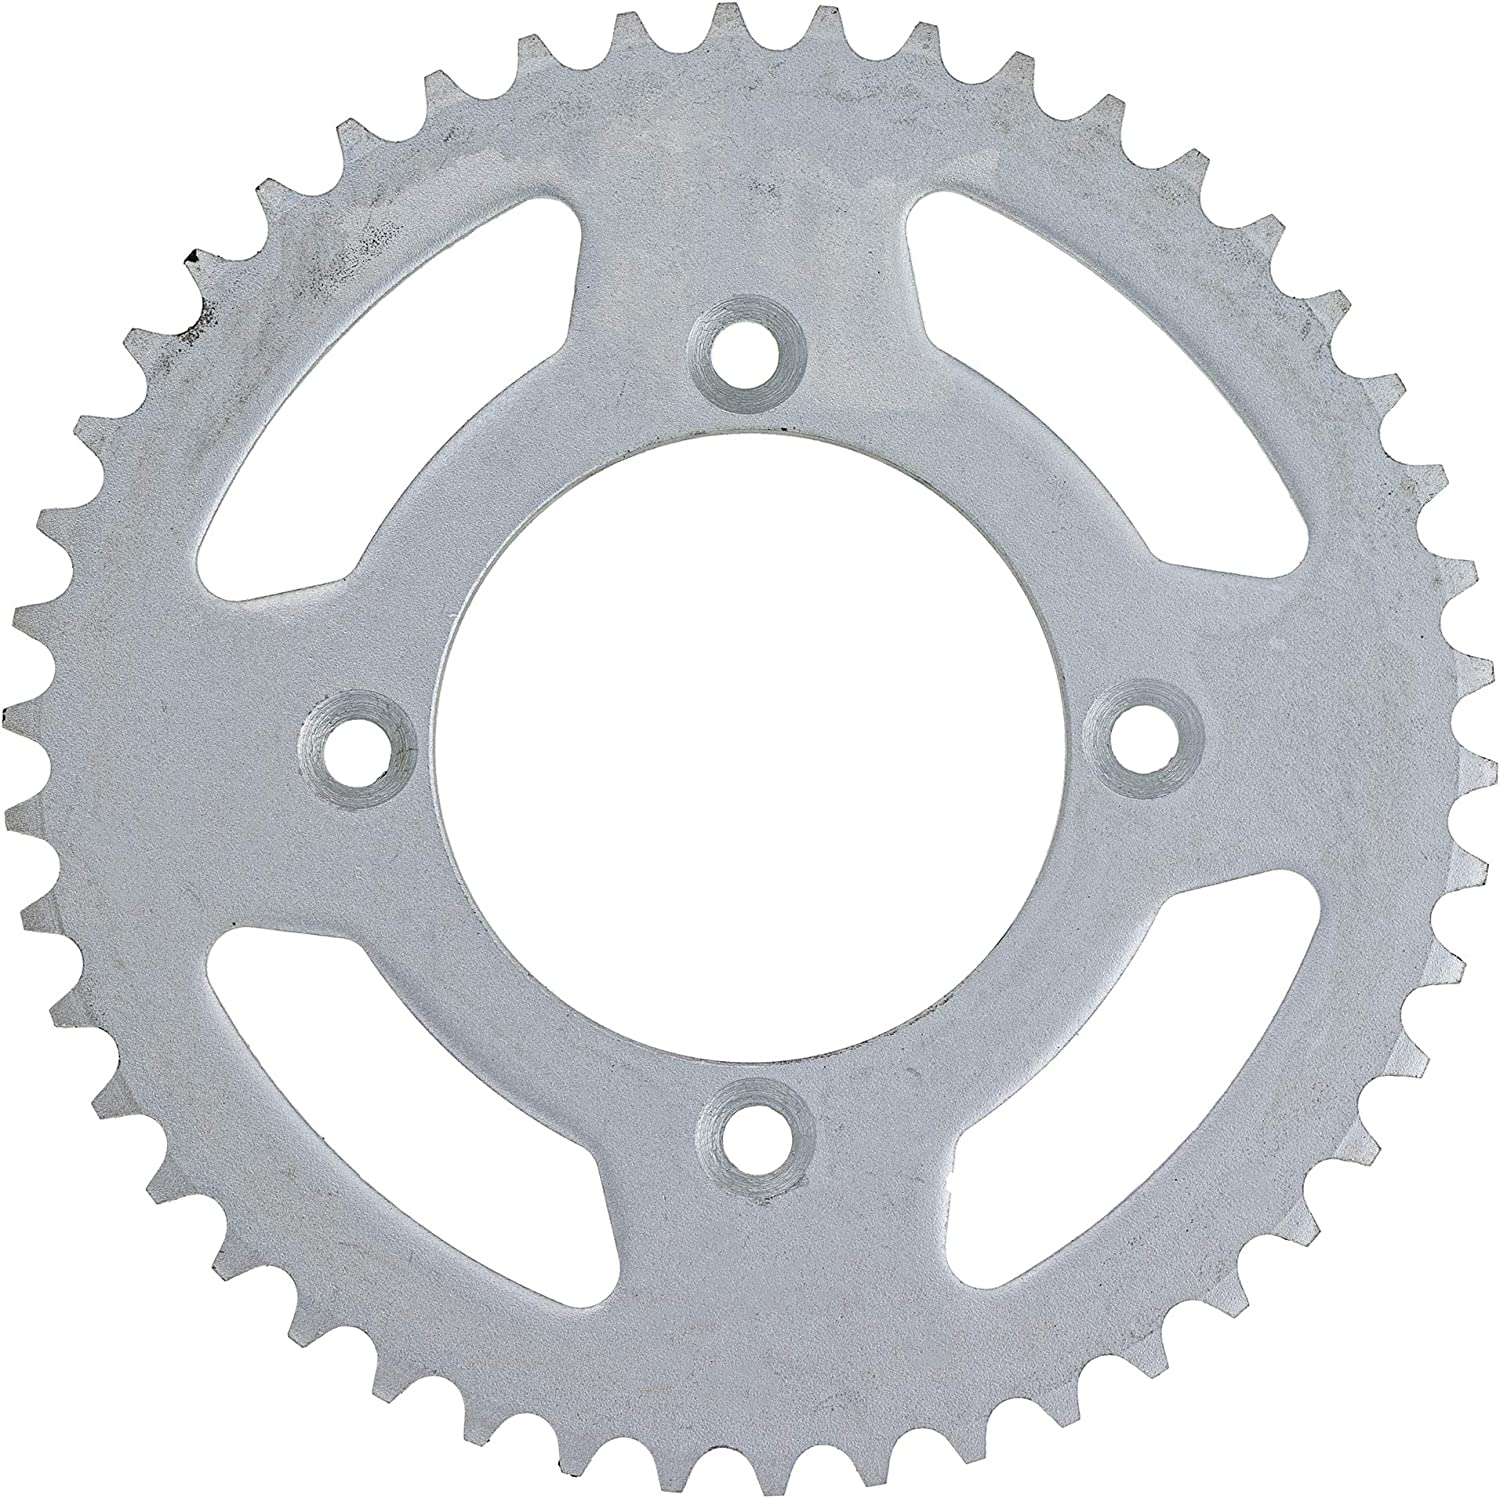 NICHE 420 Pitch 46 Tooth Rear Drive Sprocket For Honda 1985-2004 XR80R 2004-2013 CRF80F 41201-GN1-000